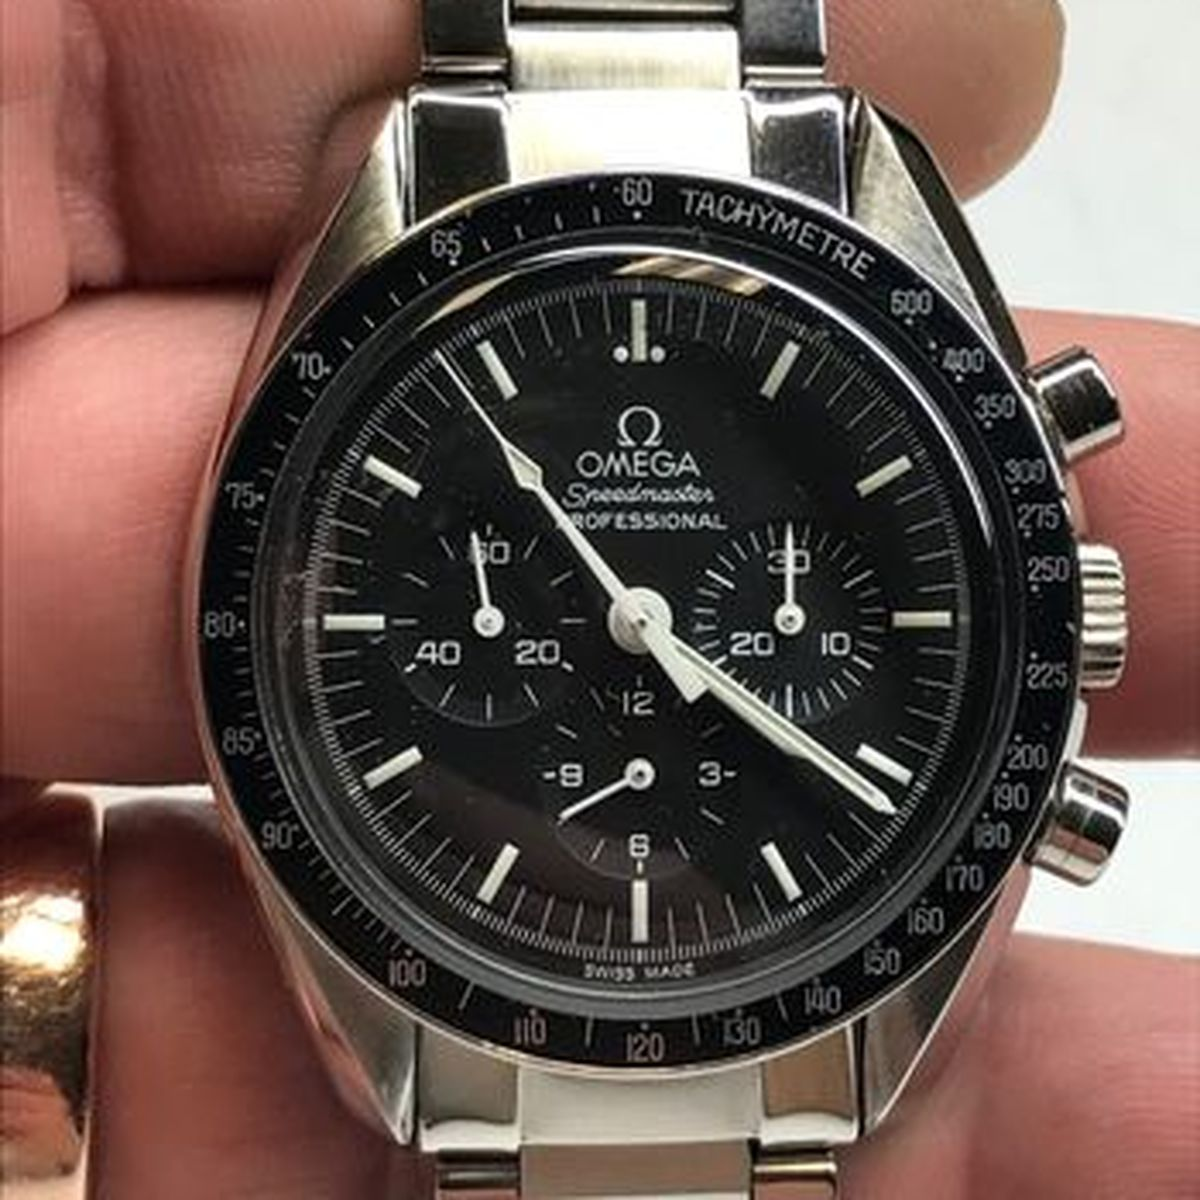 Is it Time to Service Your Omega Watch?